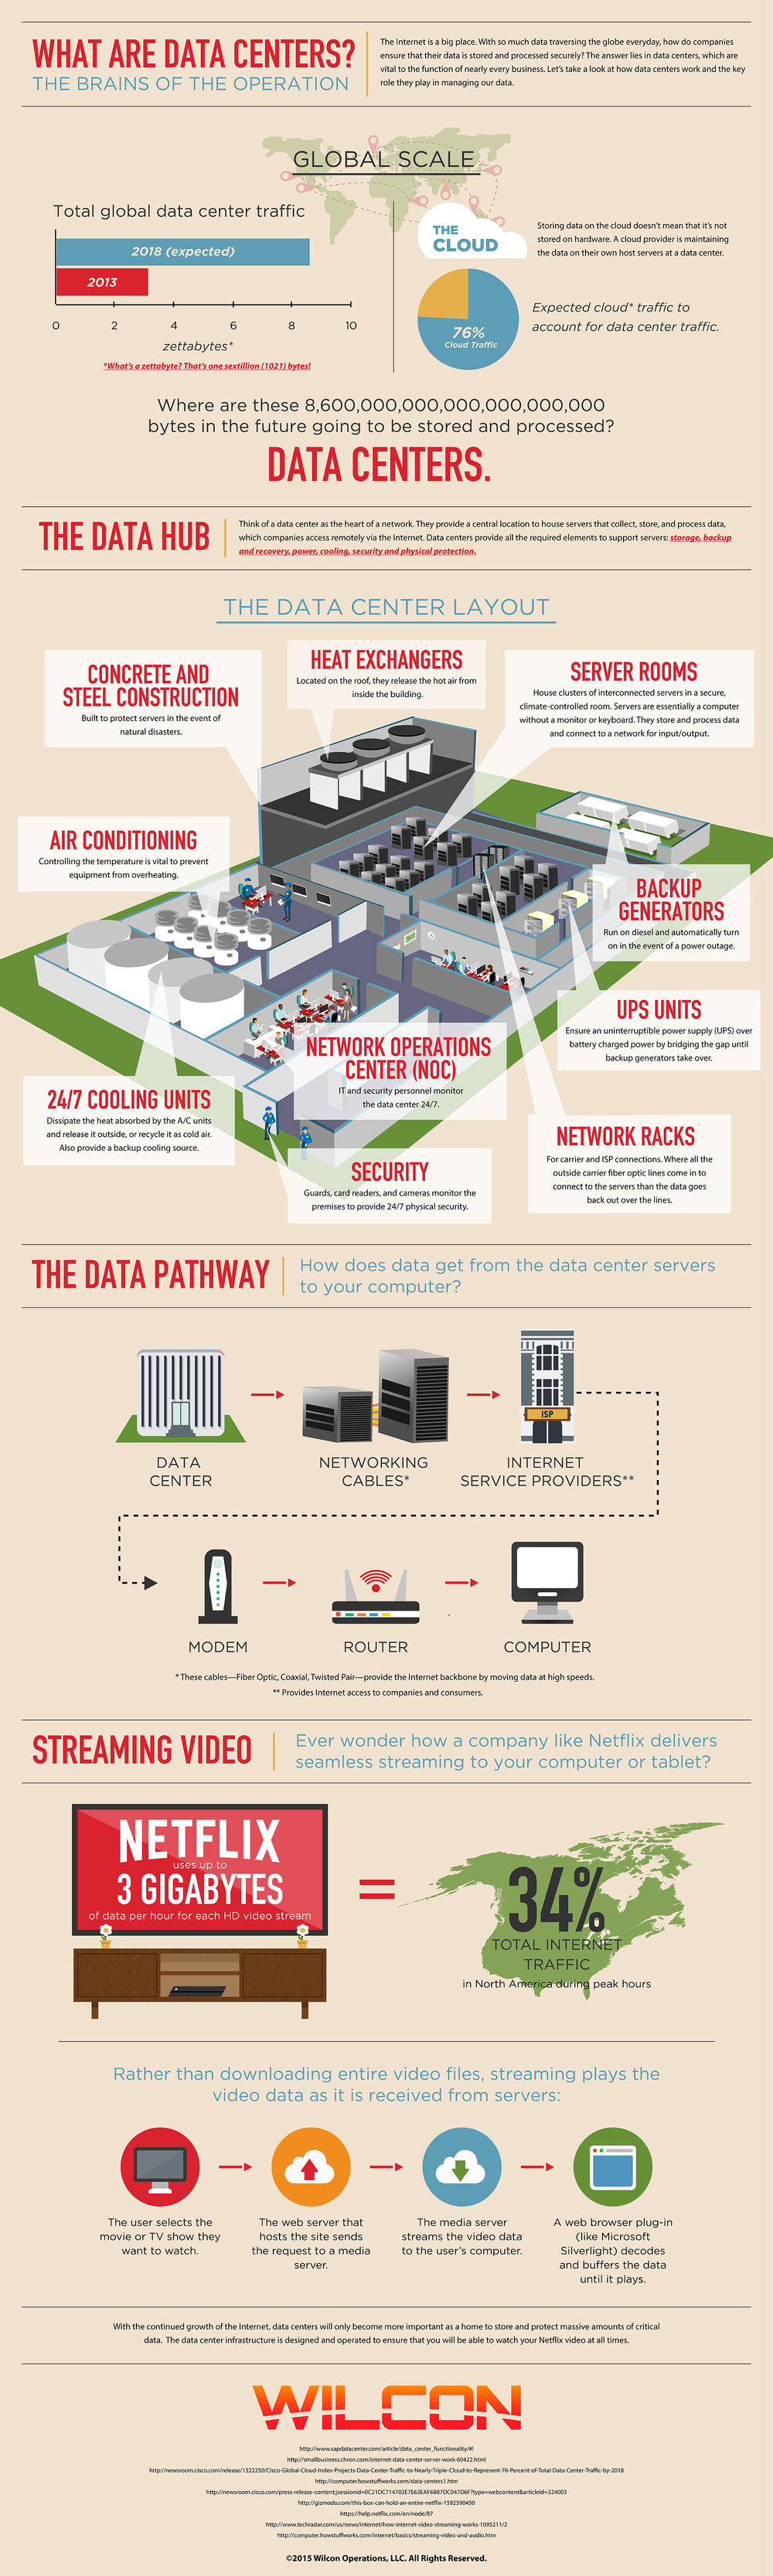 What are Data Centers?